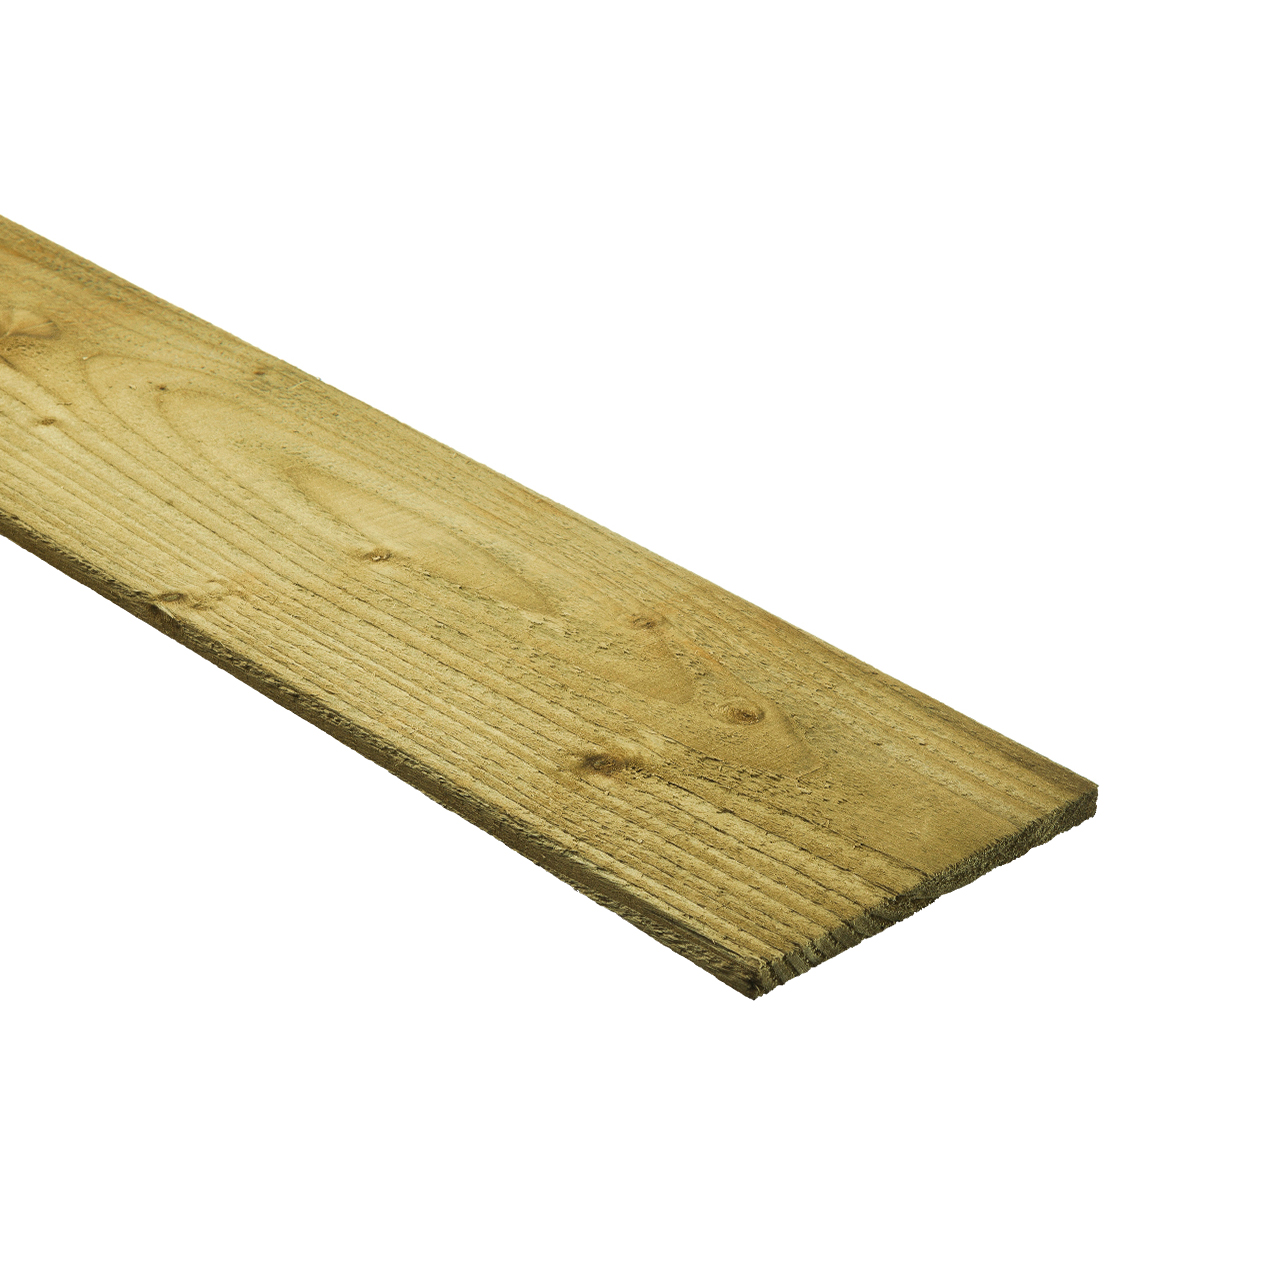 Rough Sawn Carcassing Green Treated 19mm x 100mm image 0